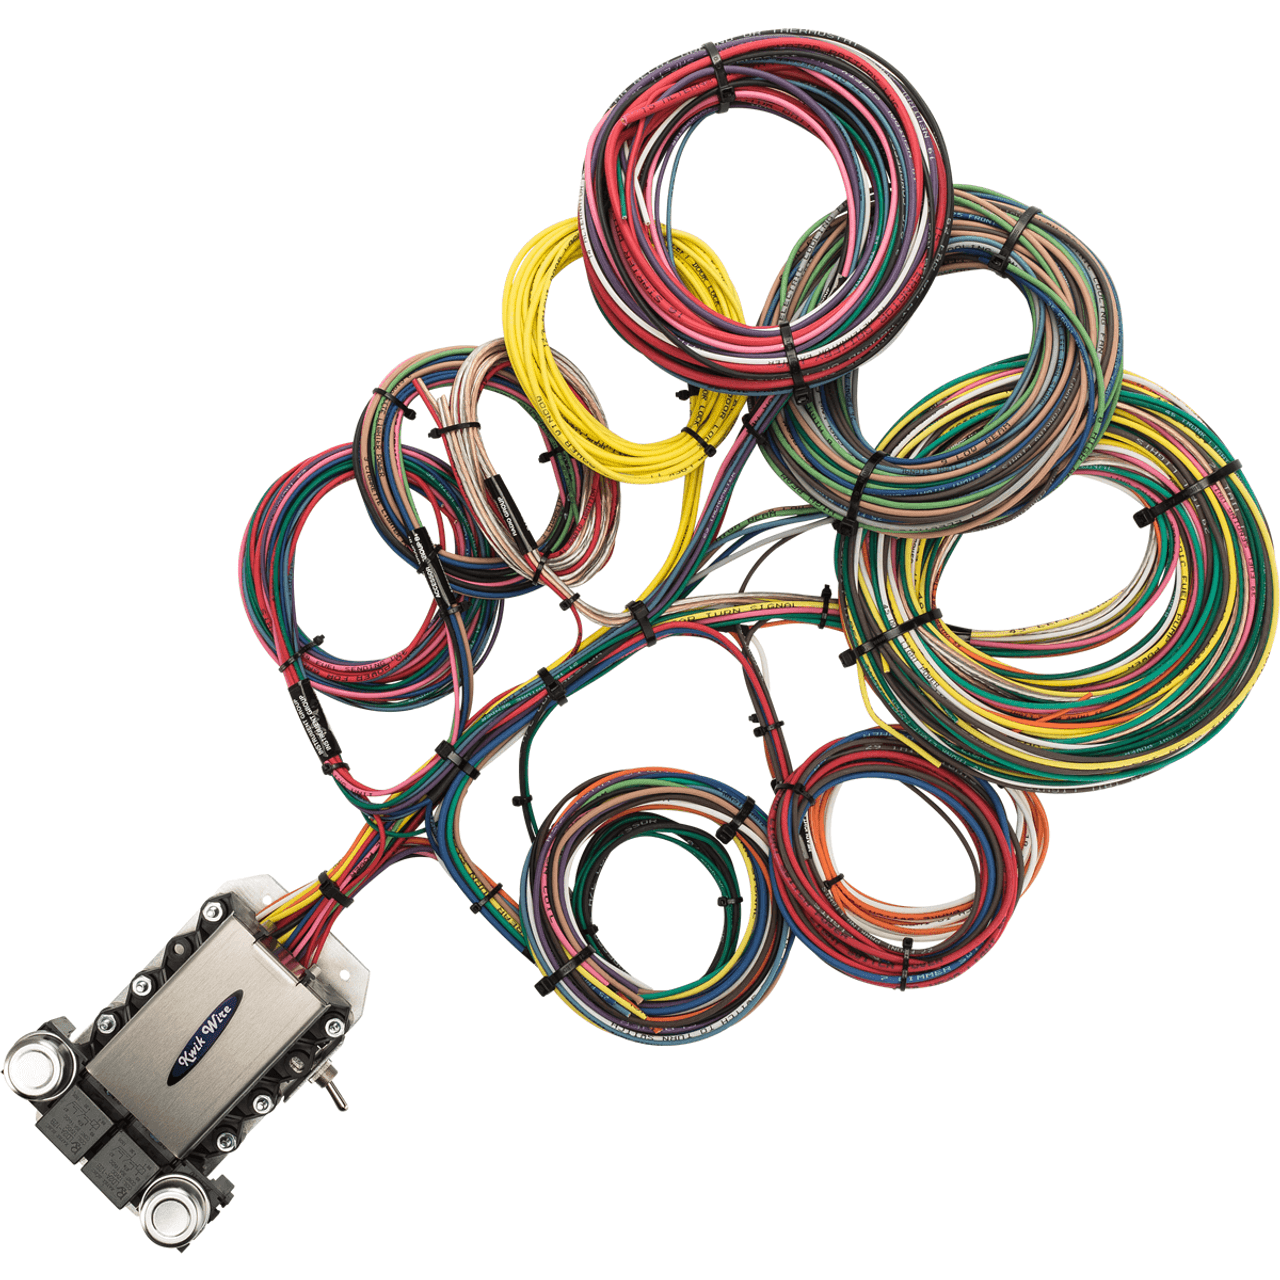 Trailer Wiring Harness Retainer Clips Trusted Diagram Mopar Wire Locking Clip Residential Electrical Symbols U2022 71 A Body Restoration